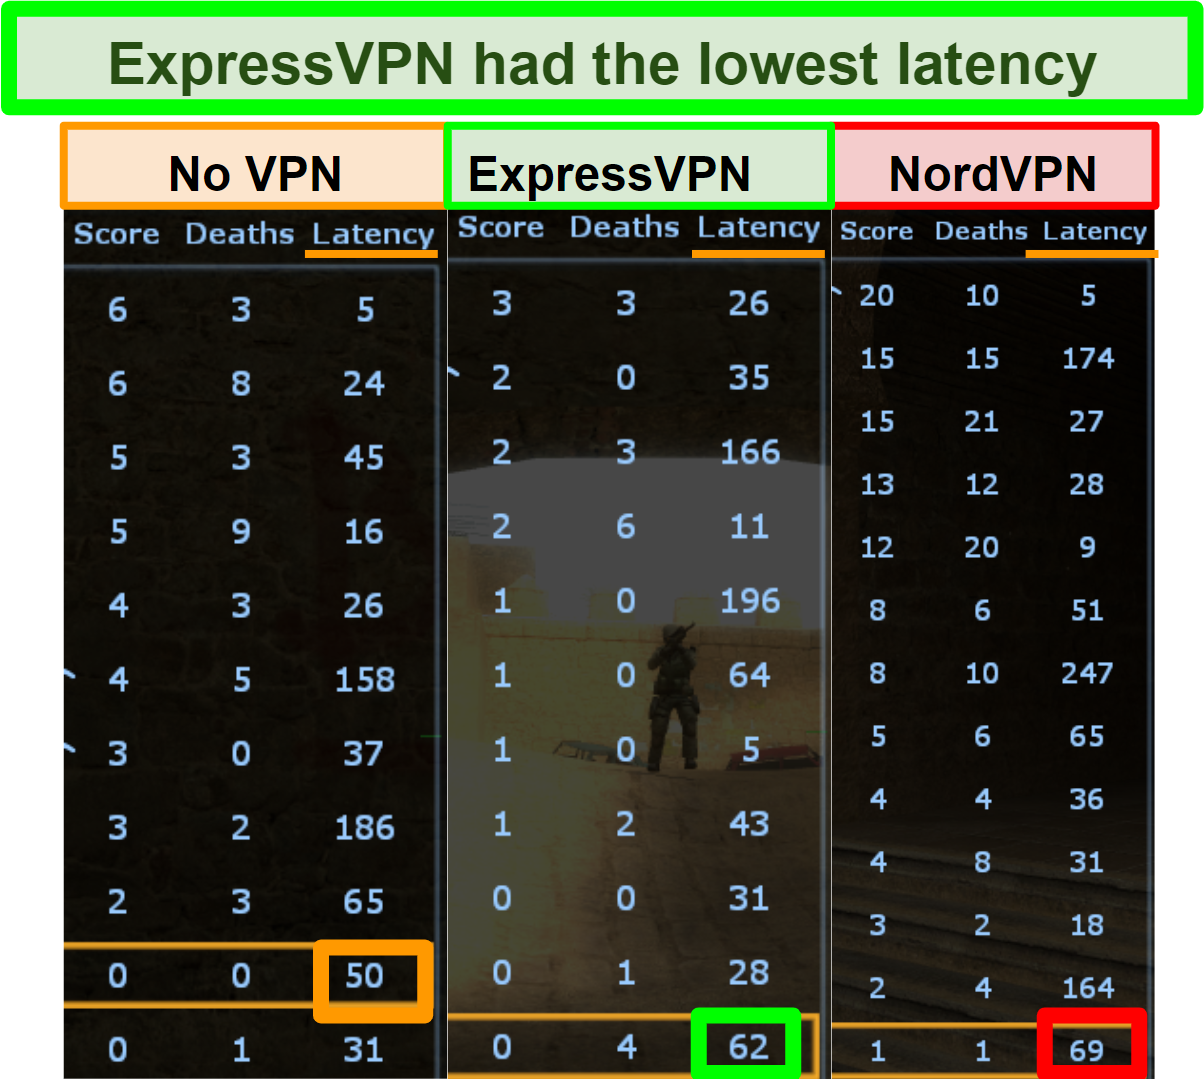 Screenshot showing latency lower for ExpressVPN than NordVPN when playing Counter-Strike